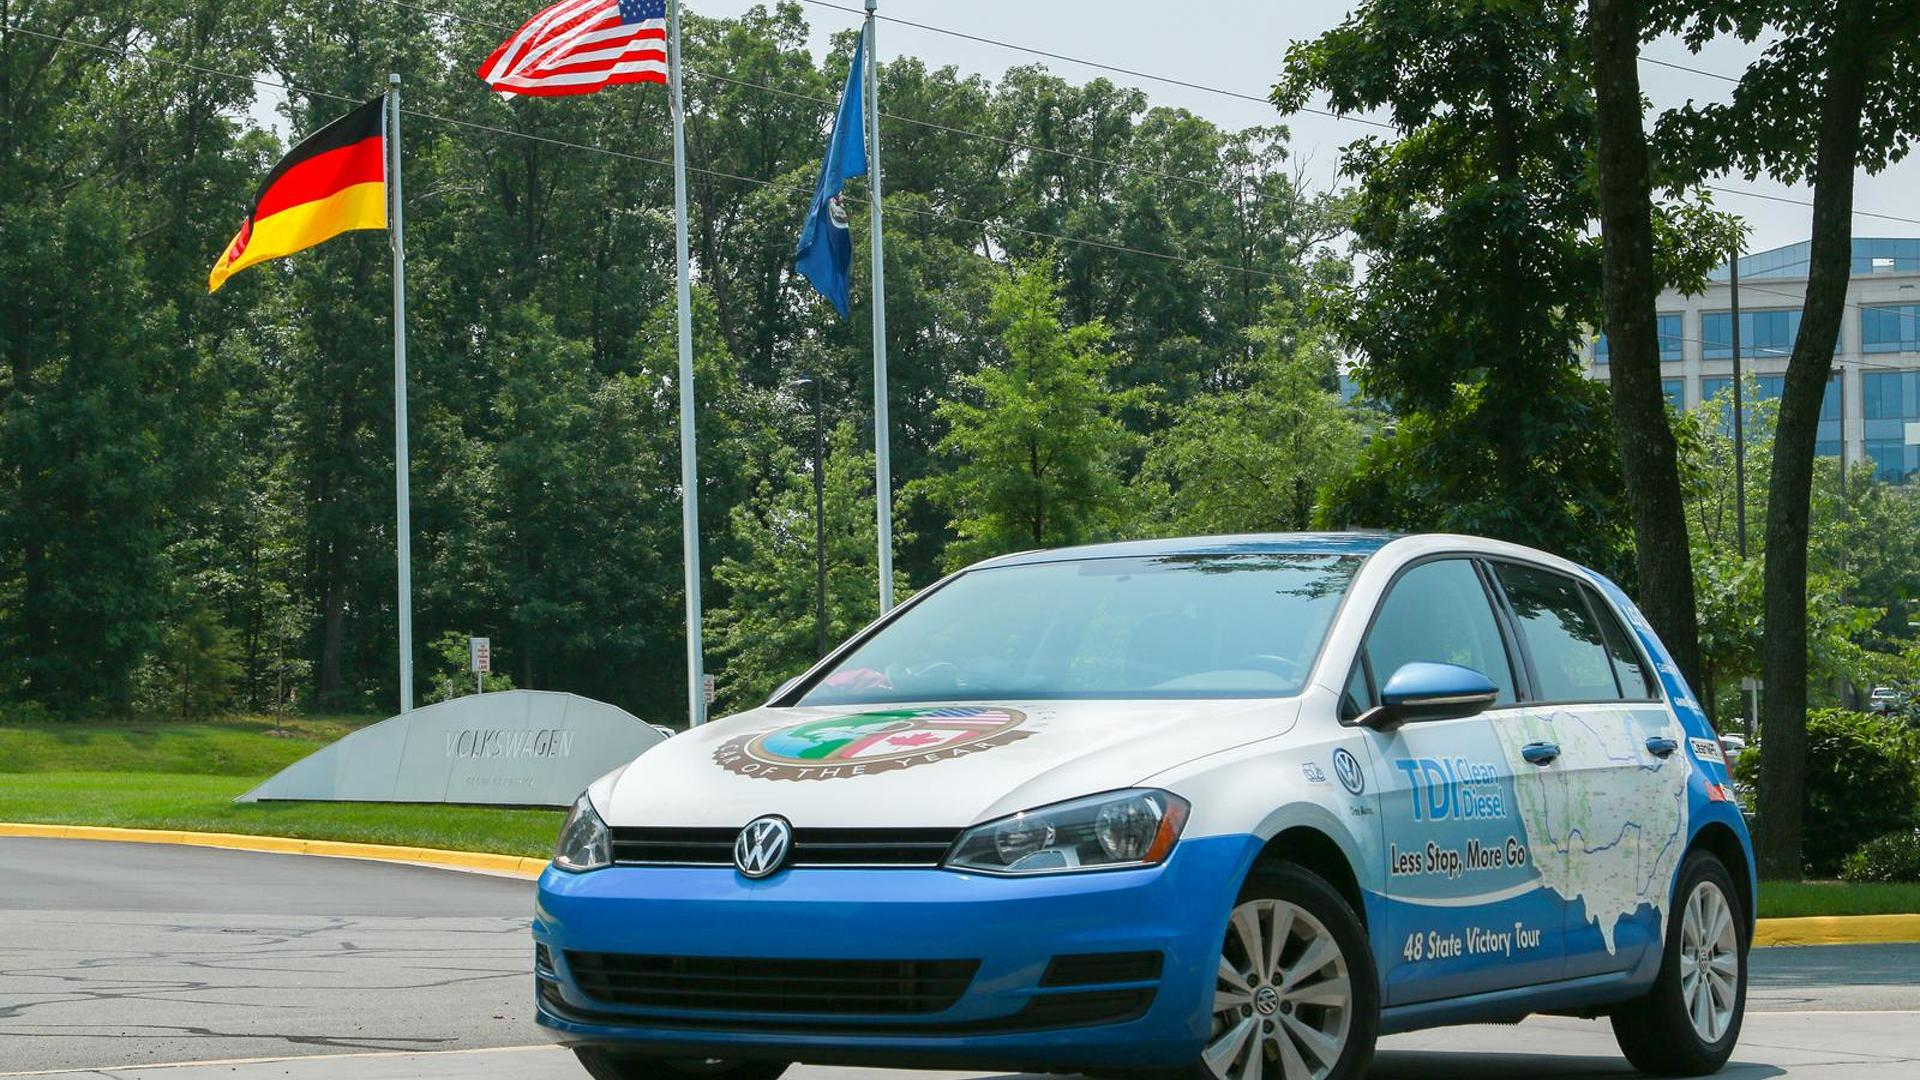 Vw Clean Diesel >> Vw Golf Tdi Clean Diesel Sets Its Own Guinness World Record For